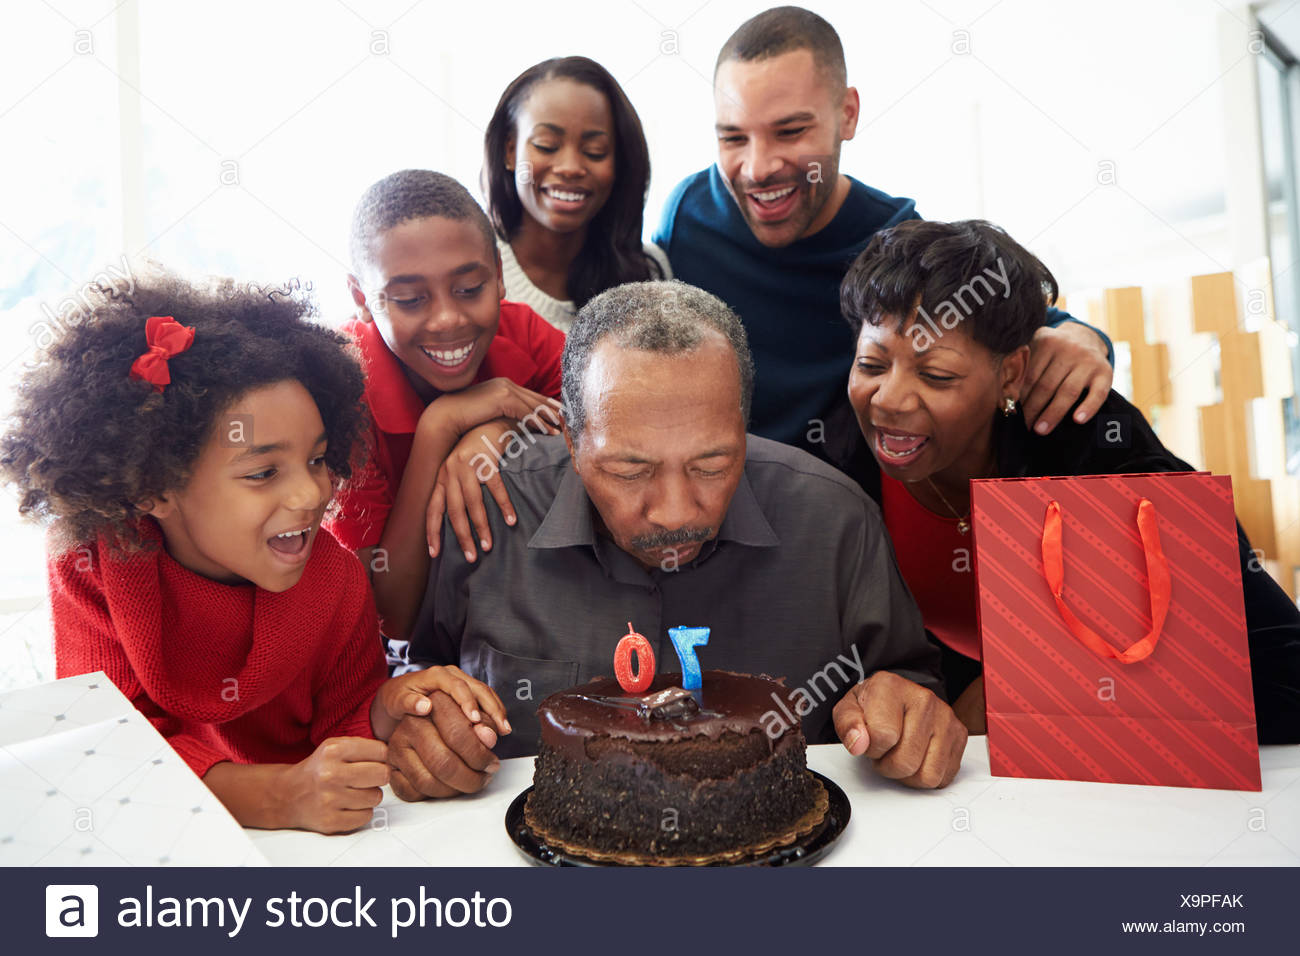 Family Celebrating 70th Birthday Together - Stock Image